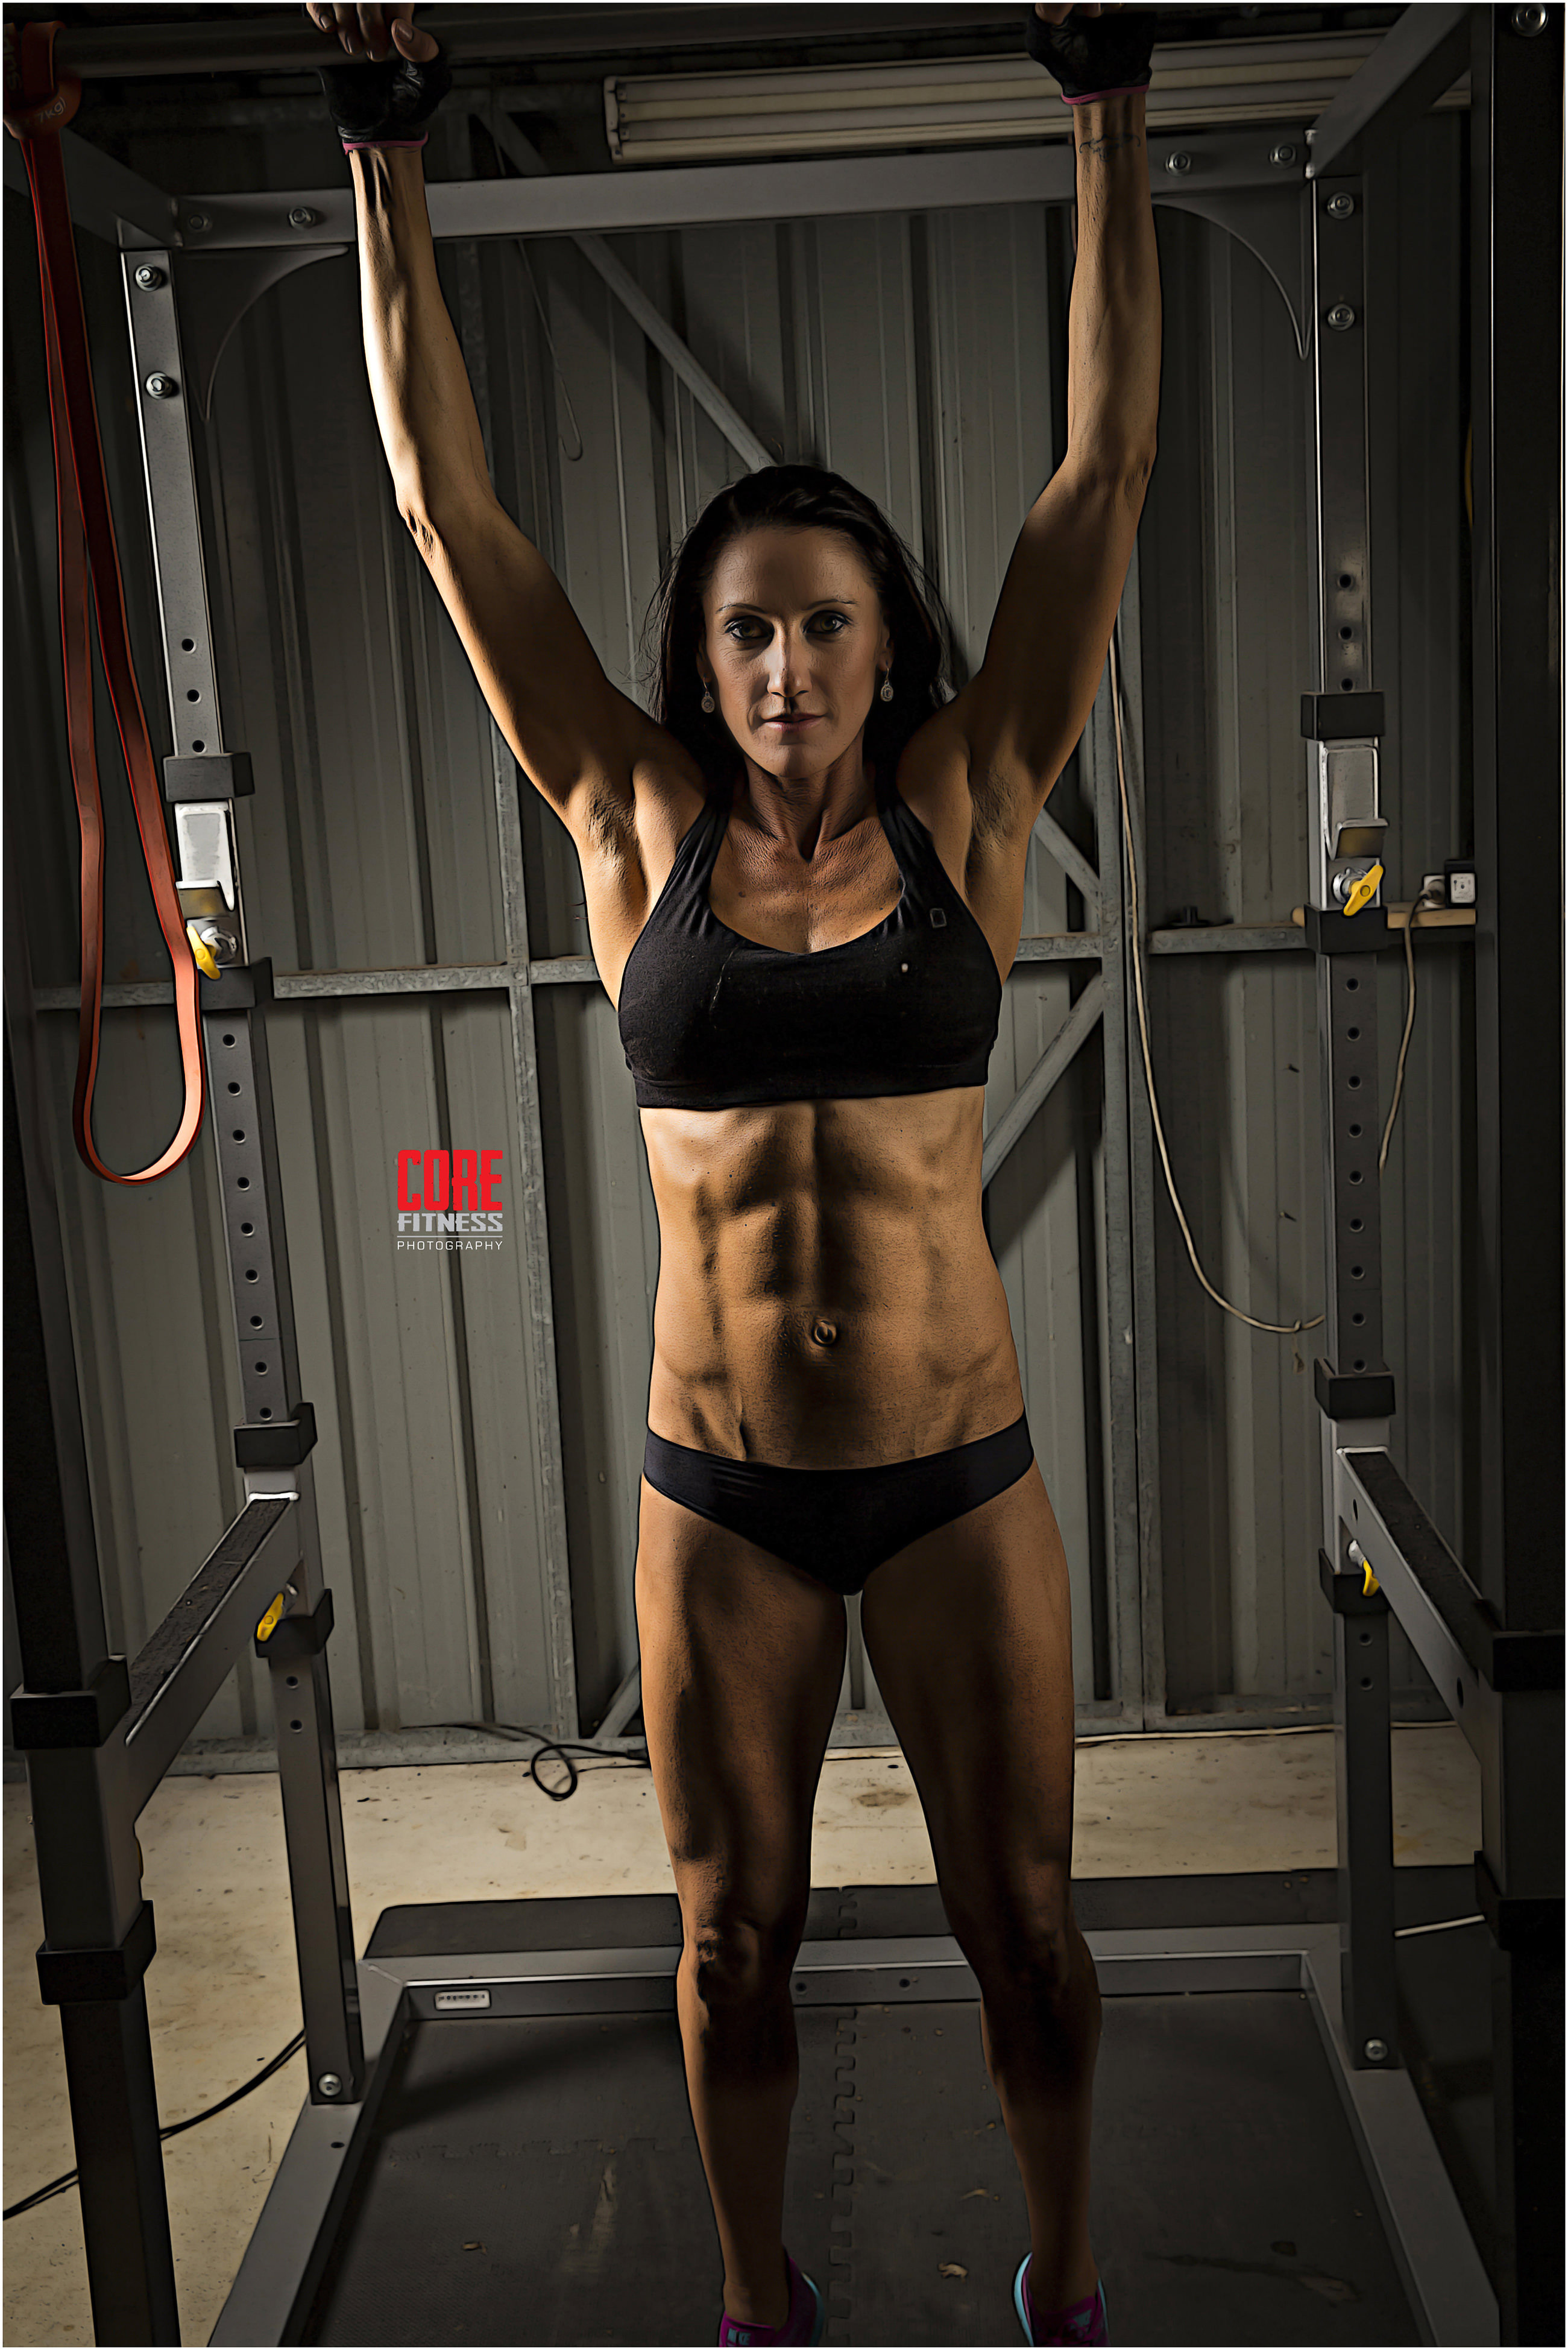 Donna Pares Fitness Photoshoot – Core Fitness Photography